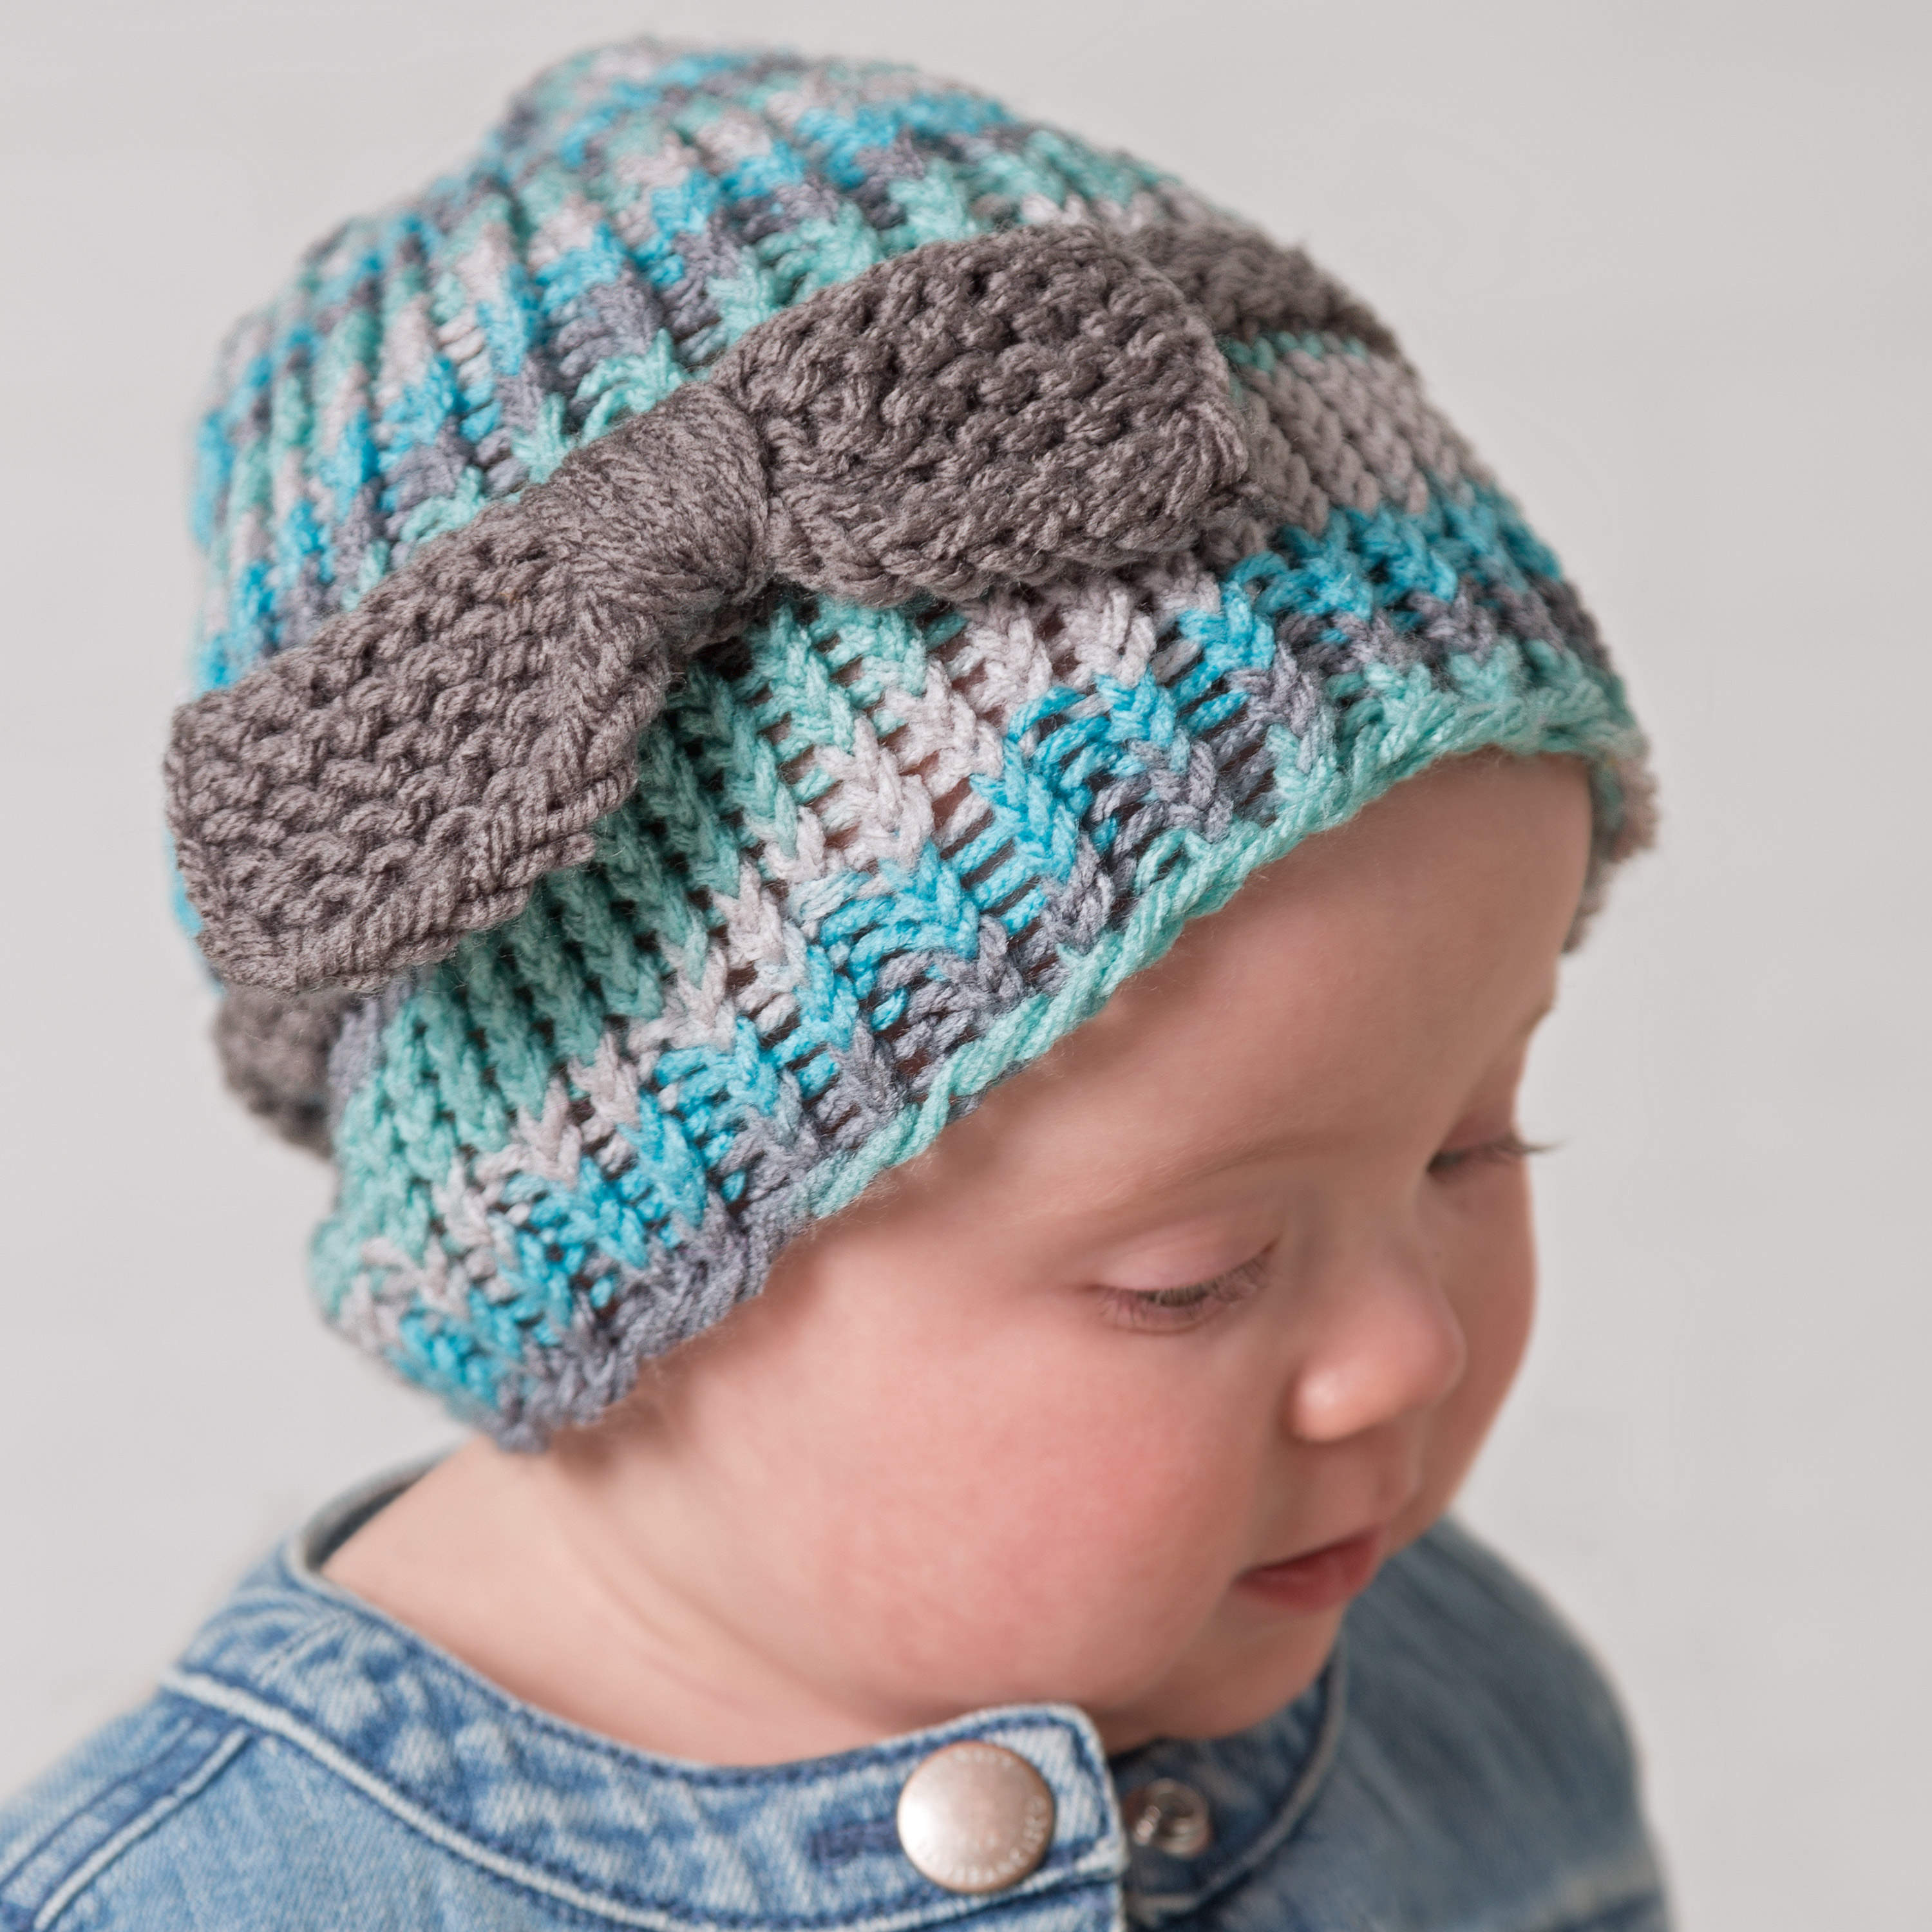 Loom Knit Hat Patterns Free Loom Knit Ba Or Toddler Bow Hat